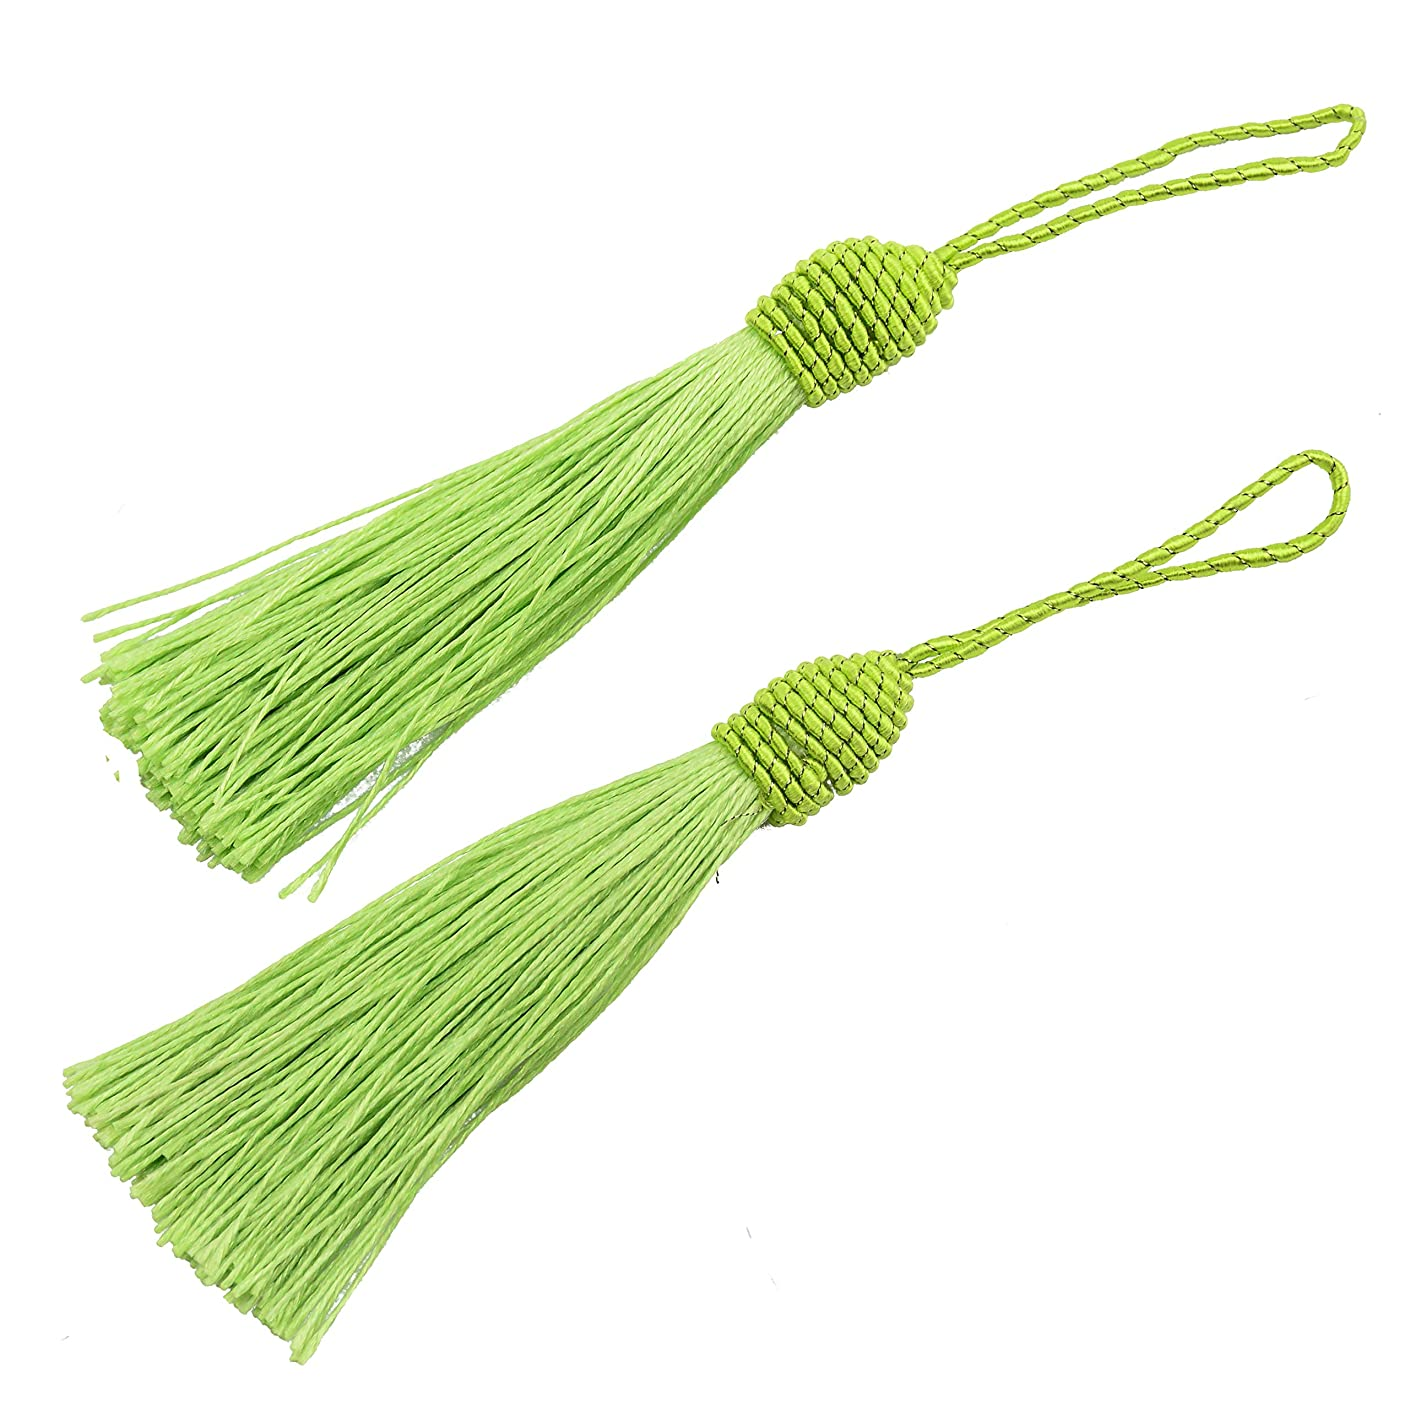 20pcs 15.5cm/6 Inch Silky Floss Bookmark Tassels with 2-Inch Cord Loop and Small Chinese Knot for Jewelry Making, Souvenir, Bookmarks, DIY Craft Accessory (Light Green)